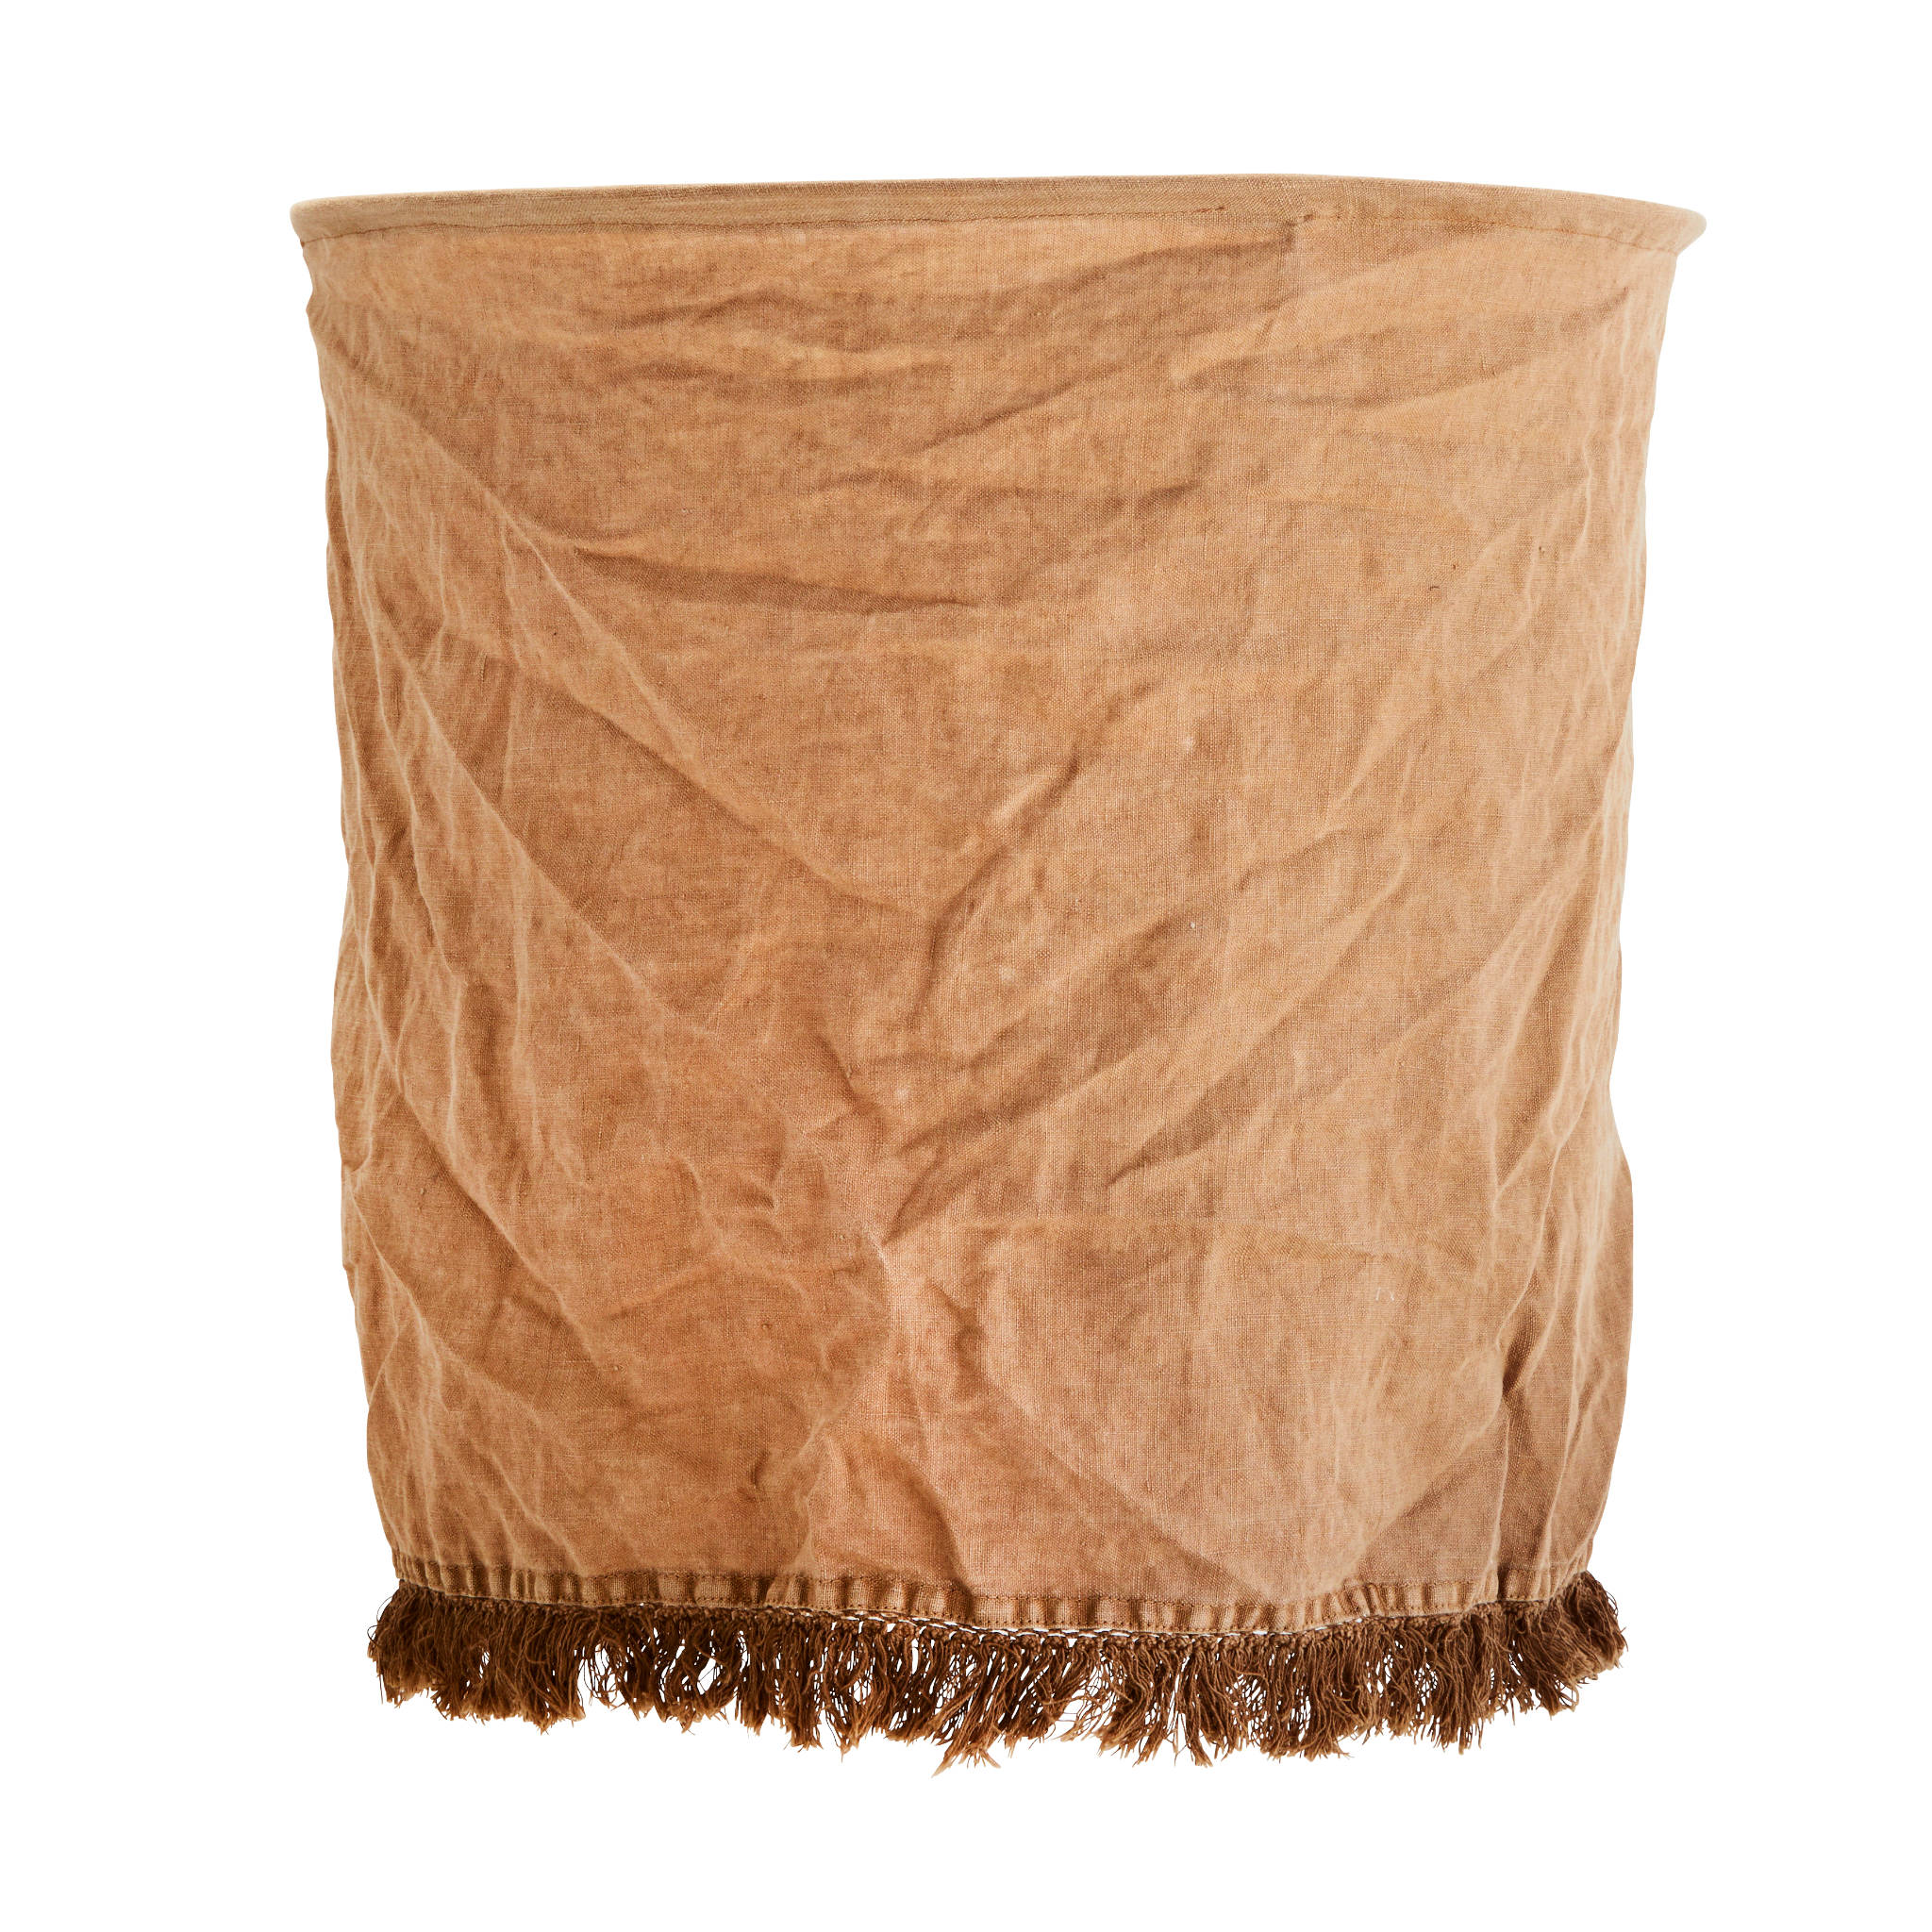 Madam Stoltz Linen Fringe Lampshade- Brown Sugar